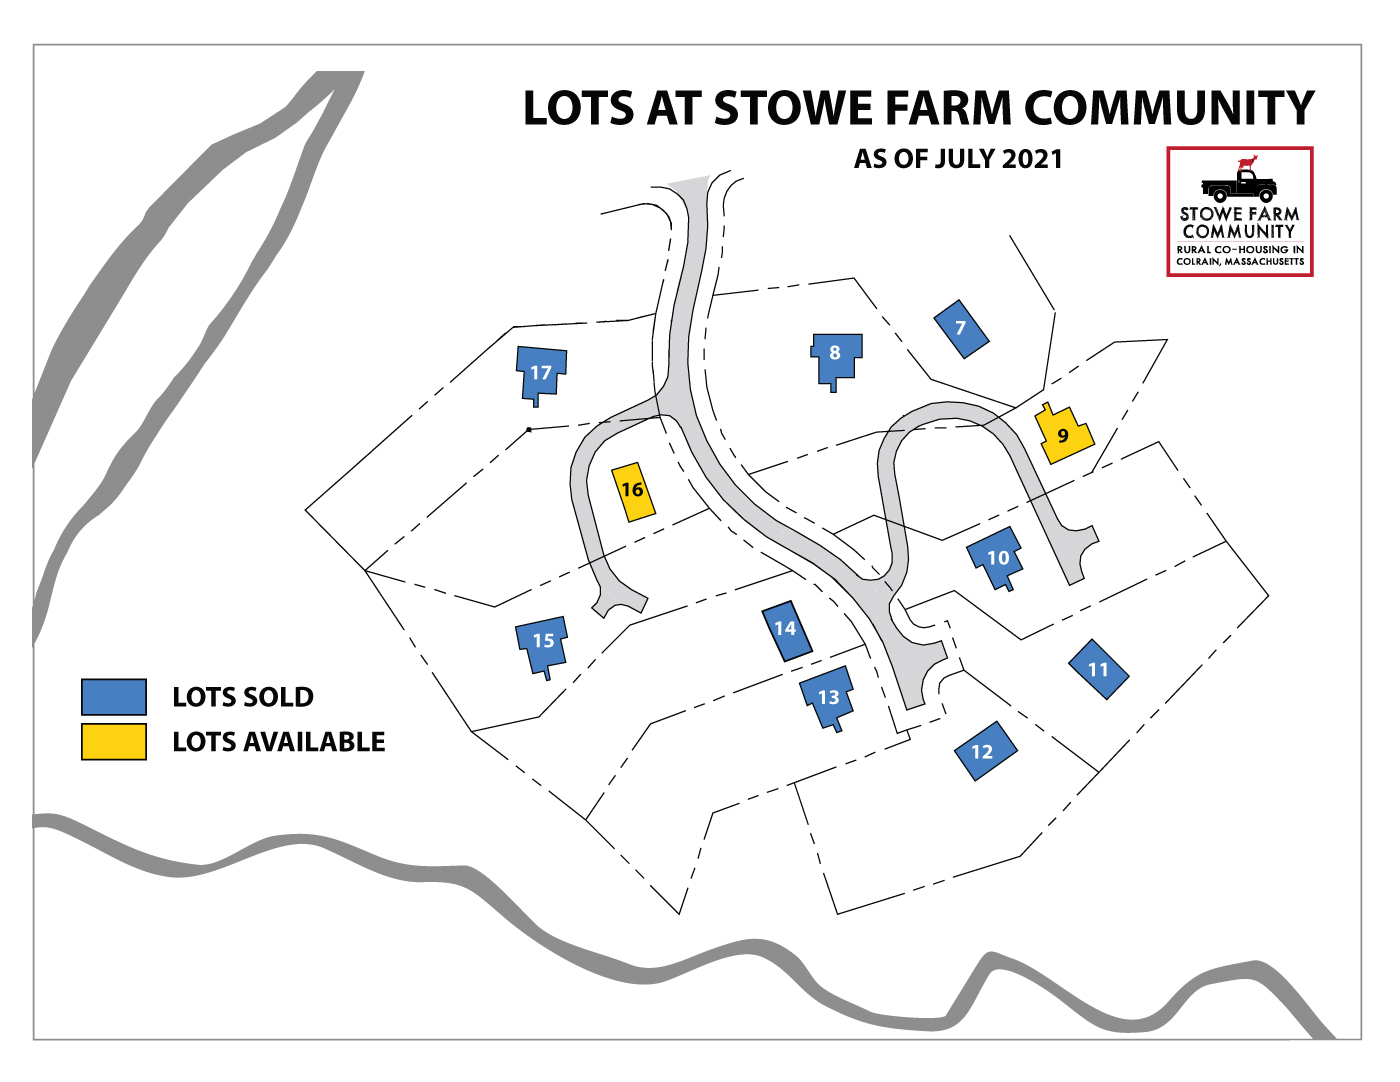 2 more building lots for sale at Stowe Farm Community